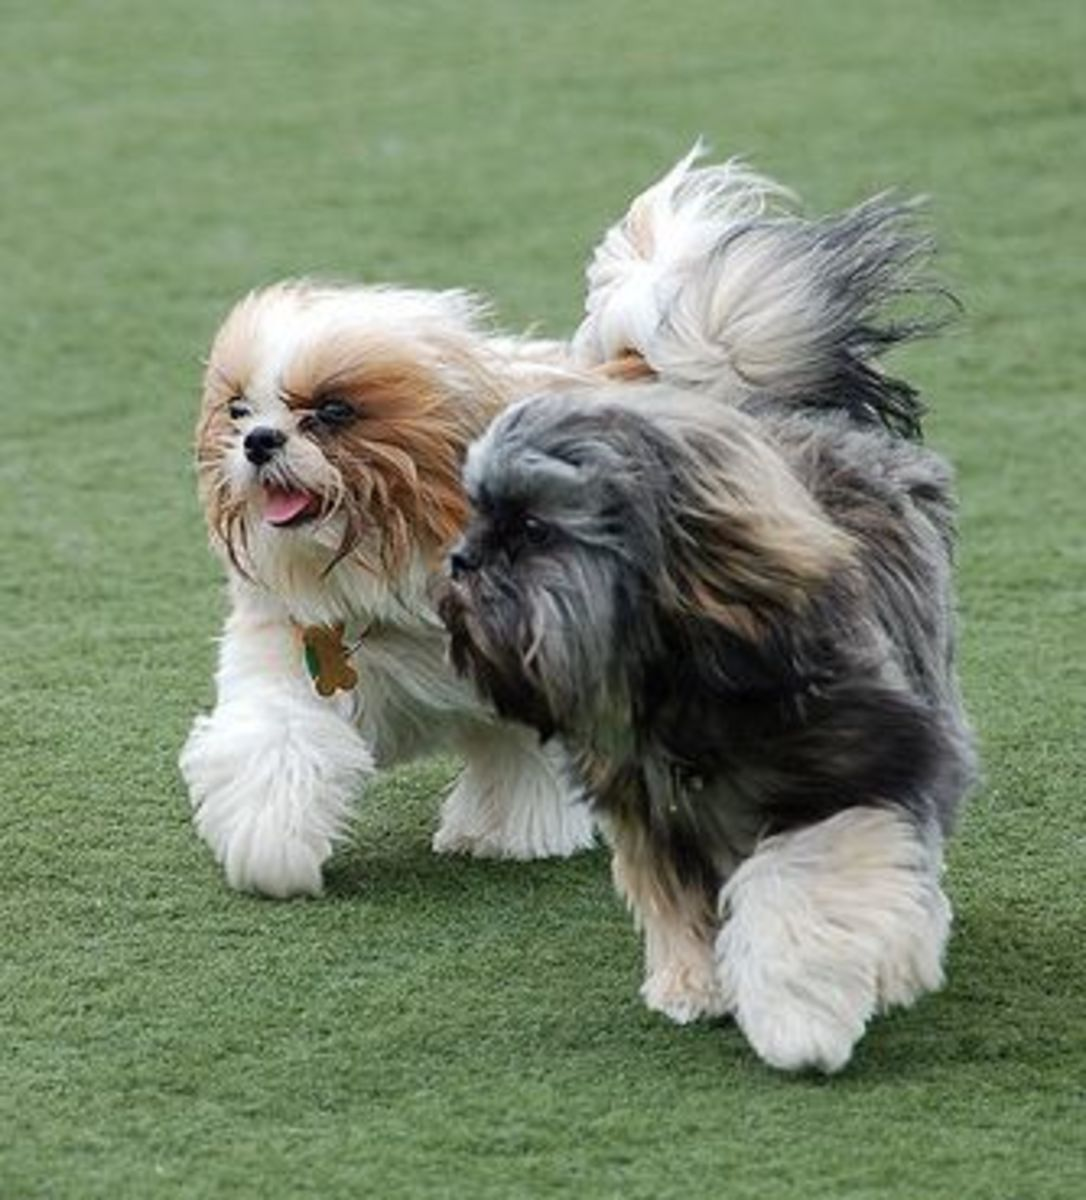 The Shih Tzu does not need much exercise and does not shed much.